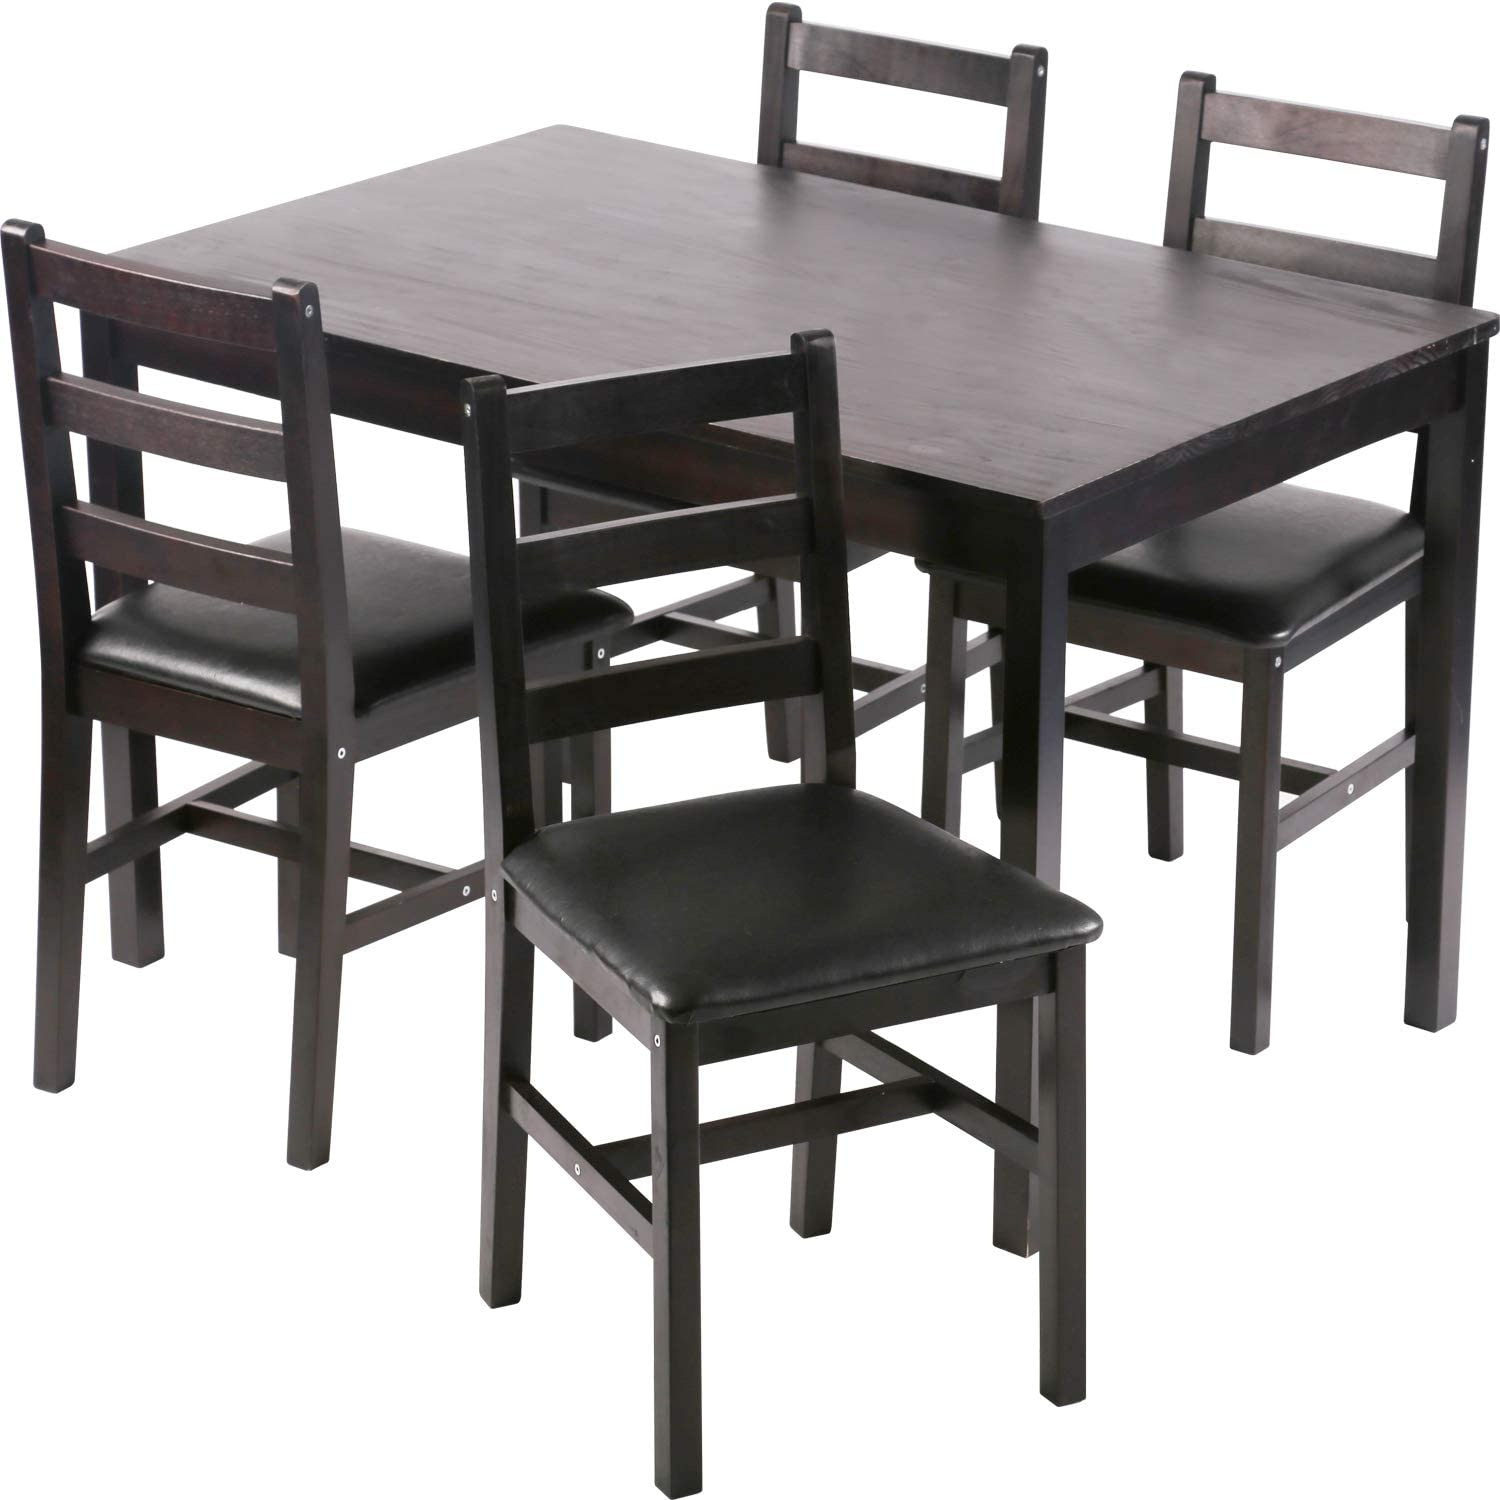 Best For wide use: Kitchen Table and Chairs for 4 Dining Room Table Set